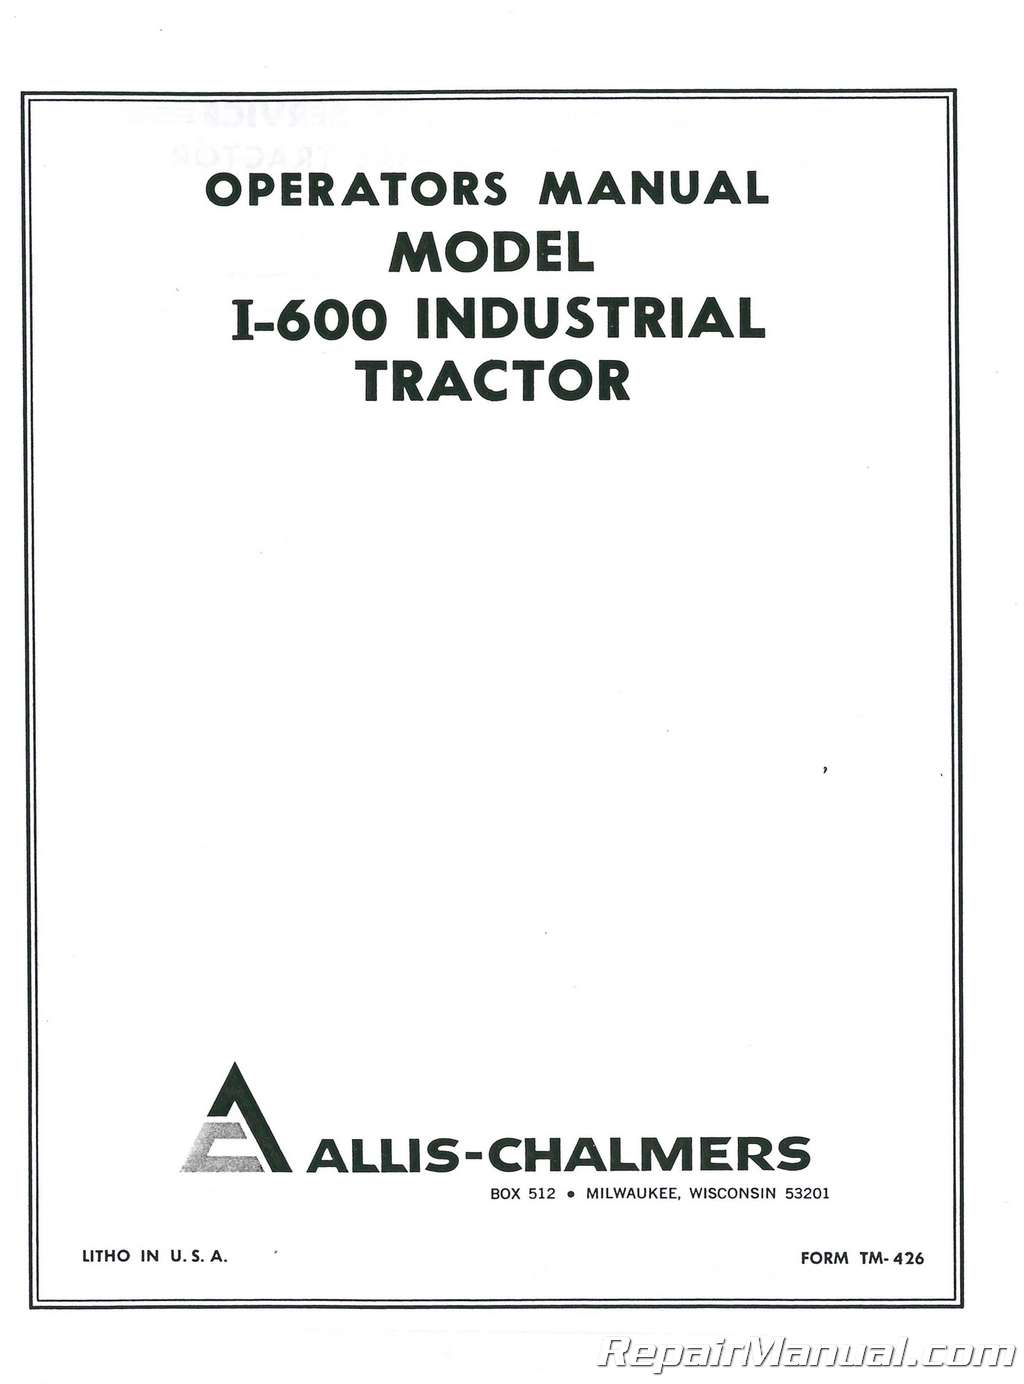 Allis Chalmers I-600 Operators Manual